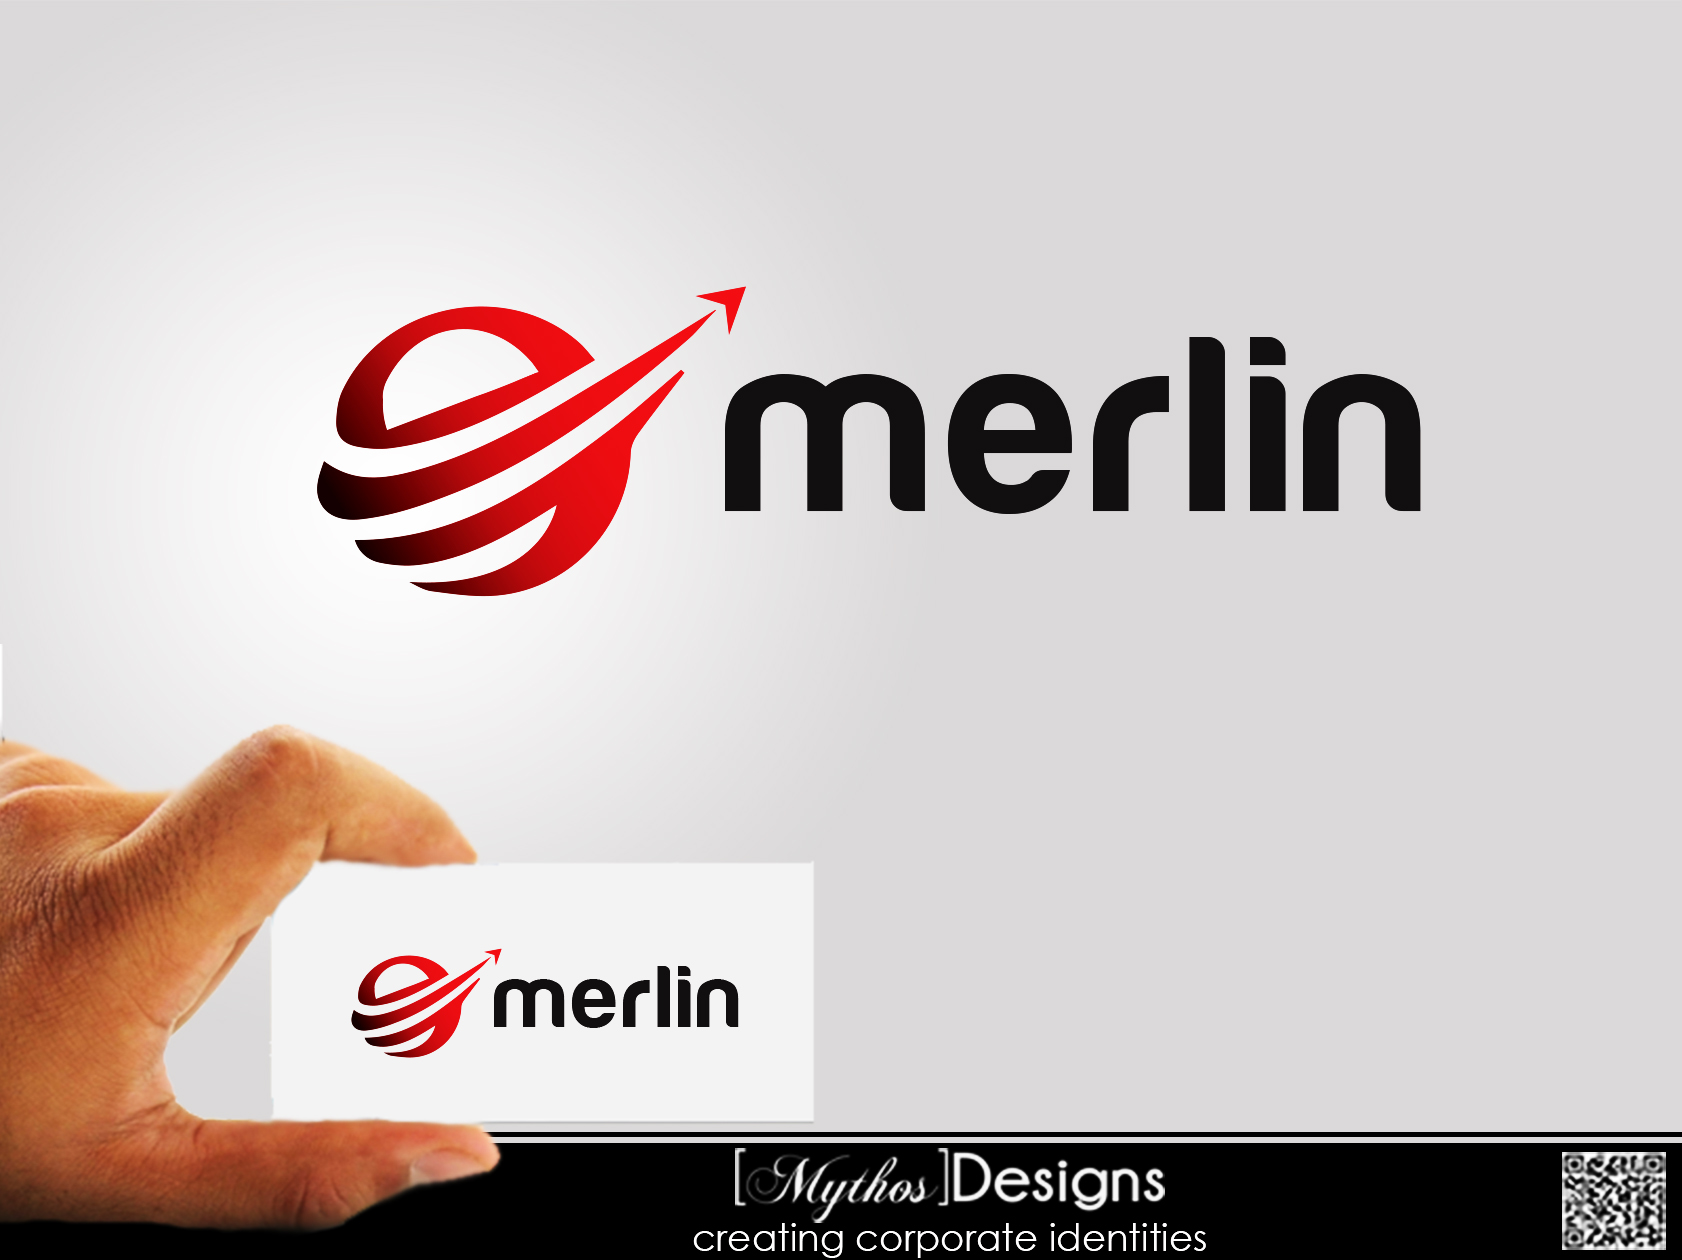 Logo Design by Mythos Designs - Entry No. 26 in the Logo Design Contest Imaginative Logo Design for Merlin.